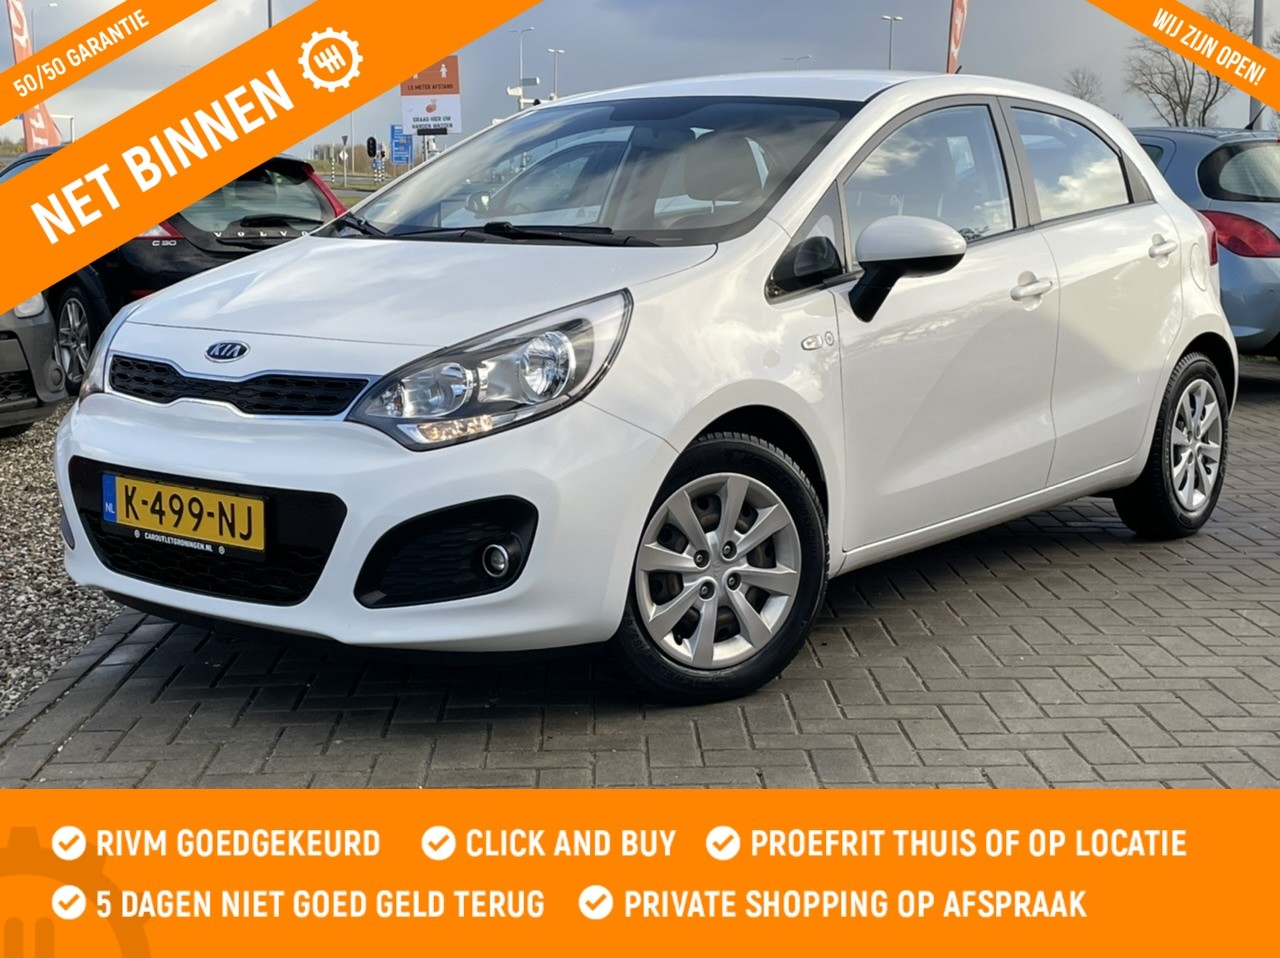 Kia Rio 1.2 CVVT Plus Pack  5D | 2012 | AIRCO | MULTIMEDIA  |